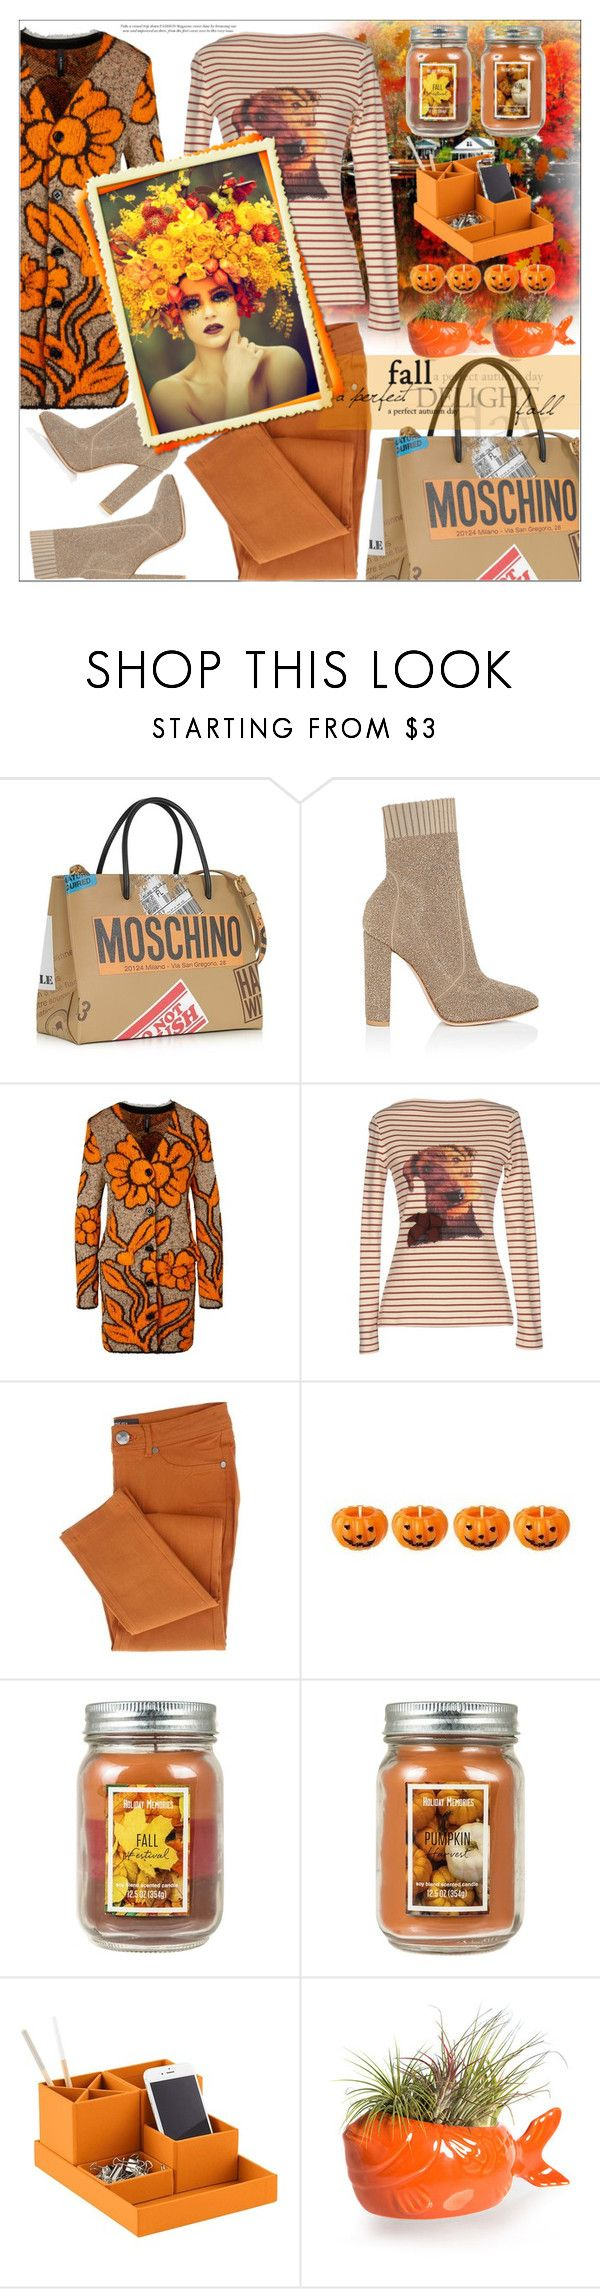 """""""Untitled #137"""" by shewalksinsilence ❤ liked on Polyvore featuring Moschino, Gianvito Rossi, MARC CAIN, Erika Cavallini Semi-Couture, Holiday Memories, Bigso and Hinterland"""